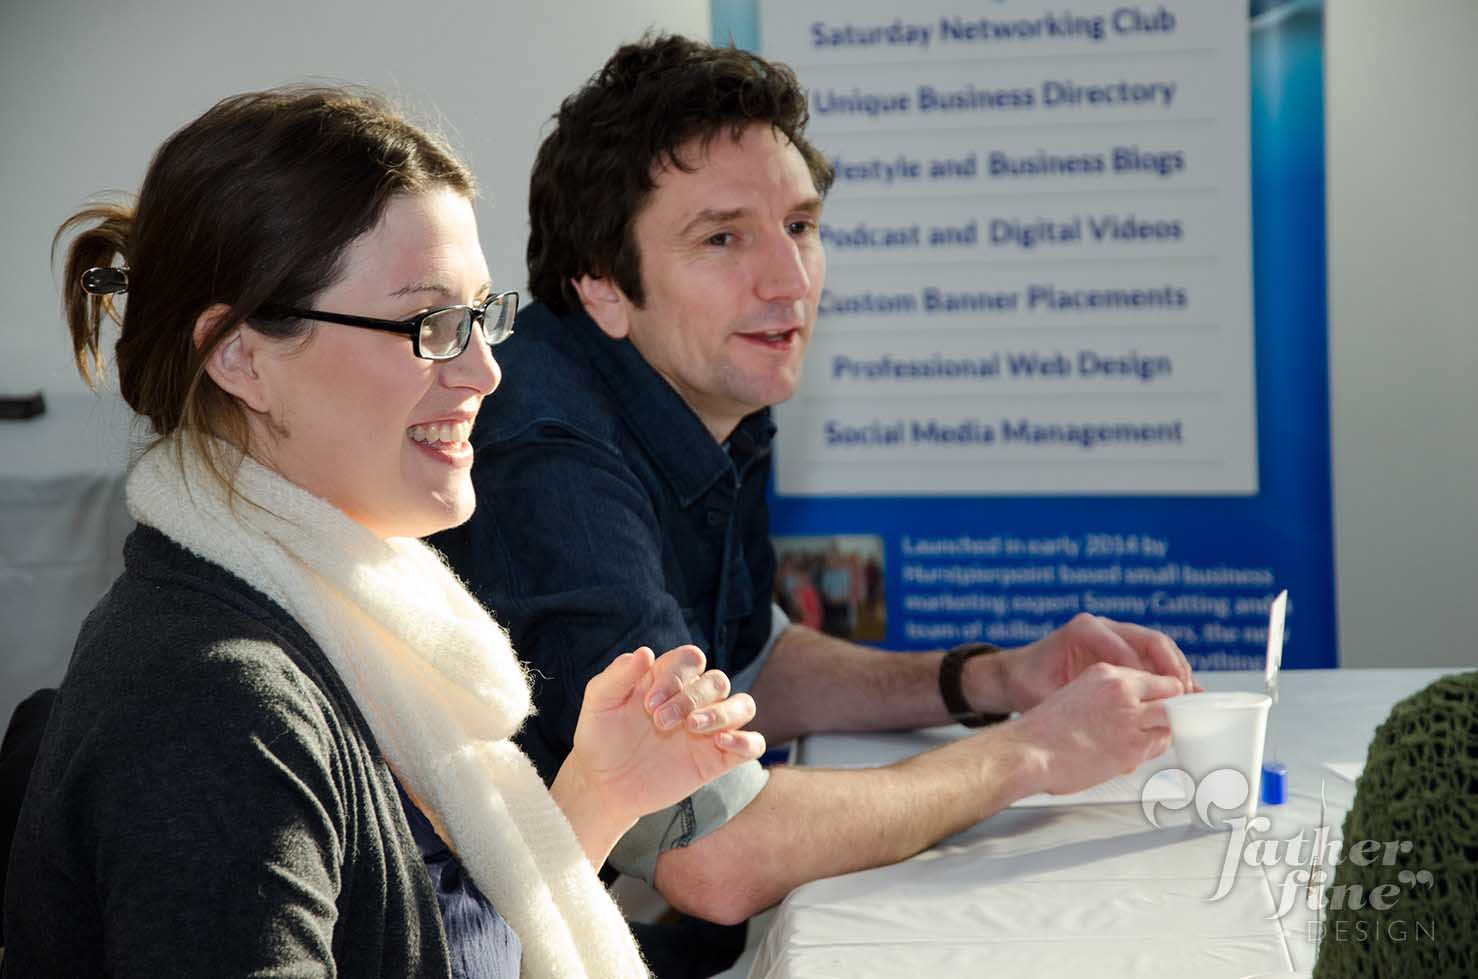 06 Sussex Pages Networking - Jan 2015